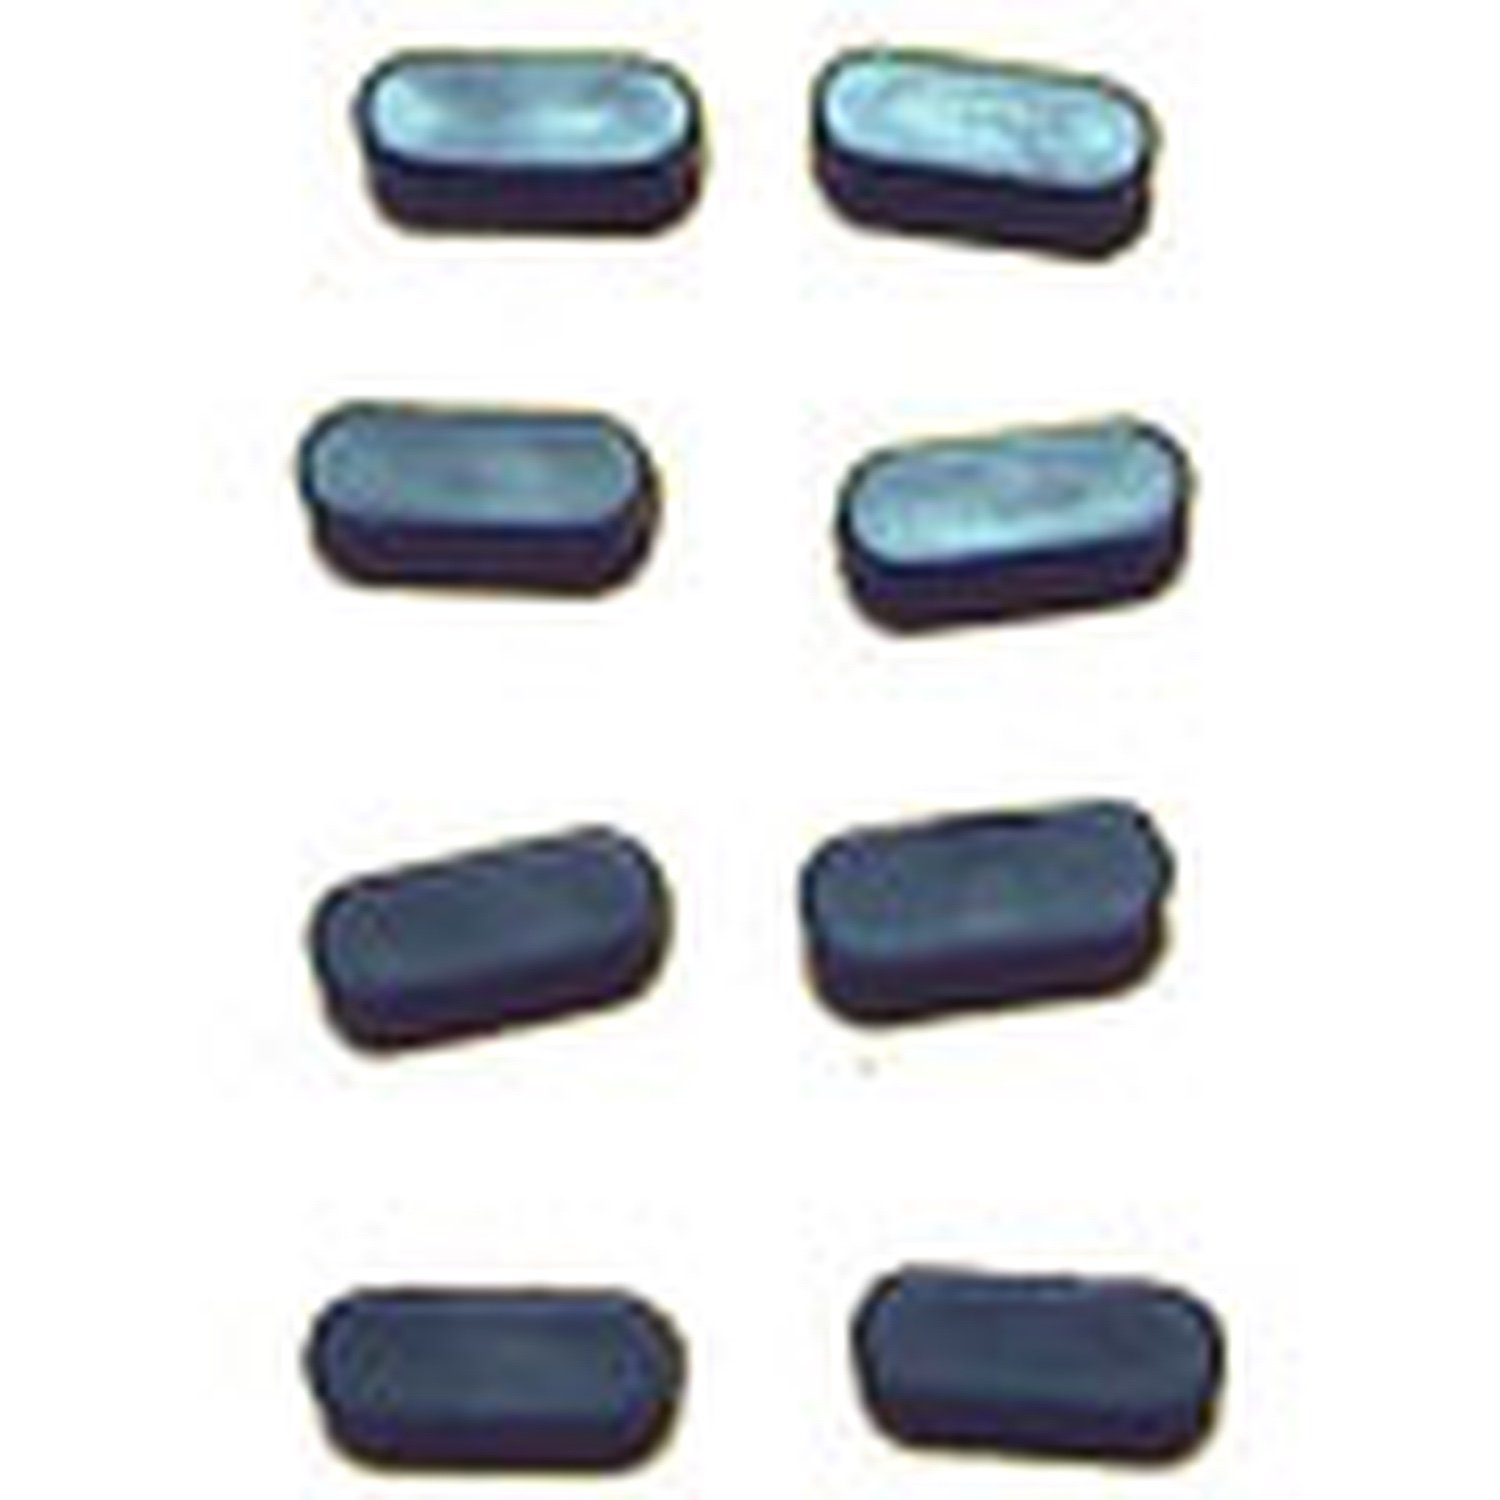 XBOX360 Replacement Rubber Feet-Set Of 8 code c1 reset potentiometer encoder 8 feet